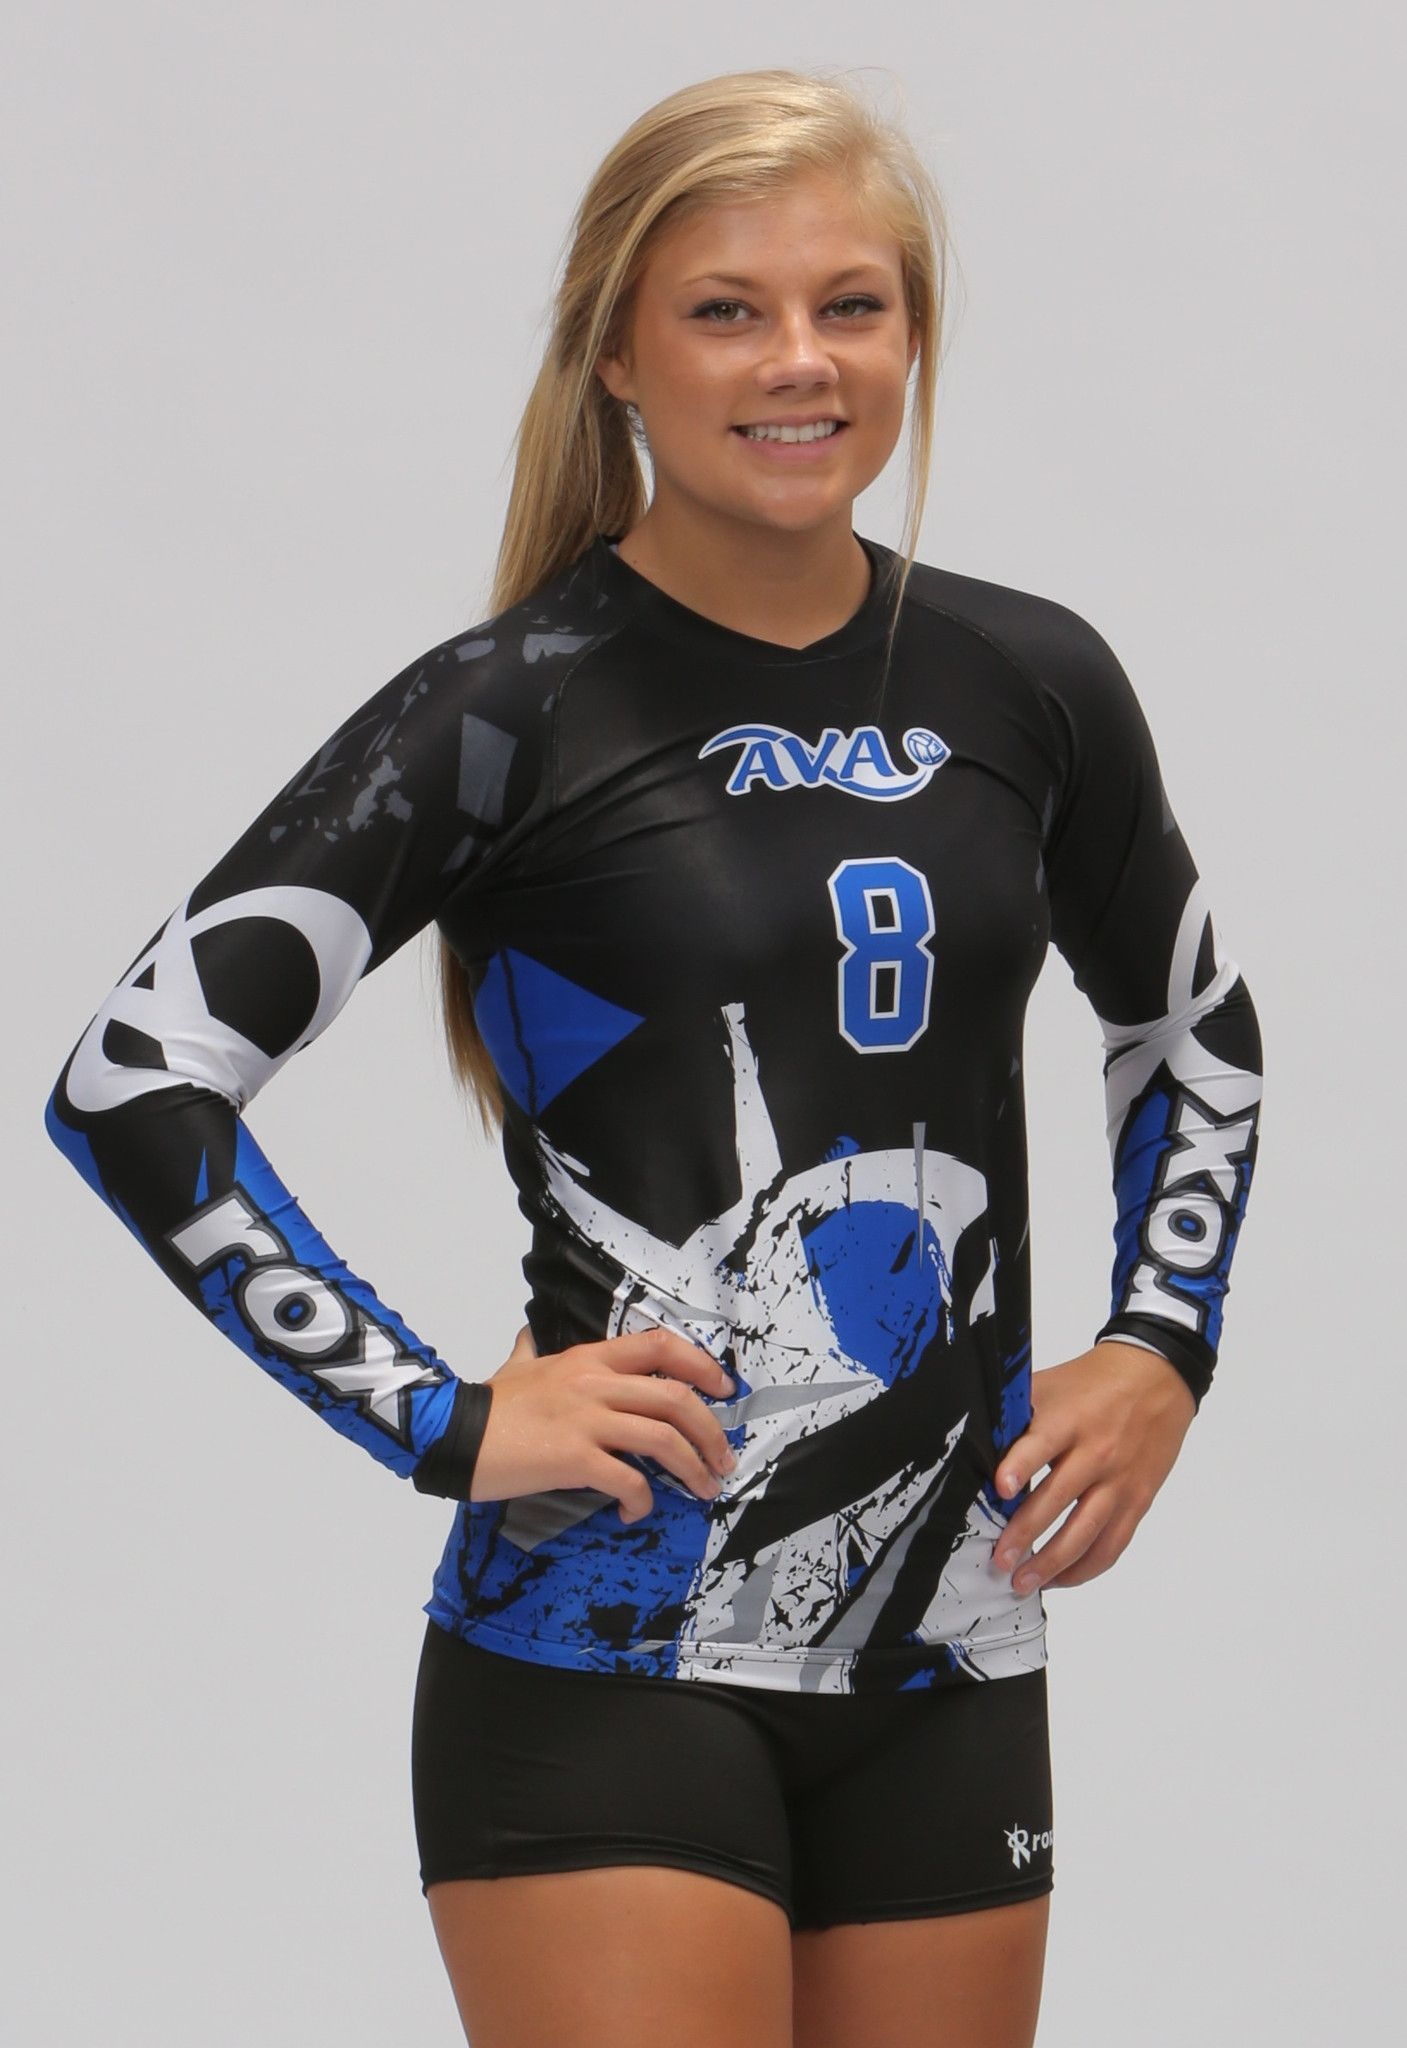 Roxamation Shattered Rox Volleyball Volleyball Jerseys Volleyball Outfits Volleyball Uniforms Design